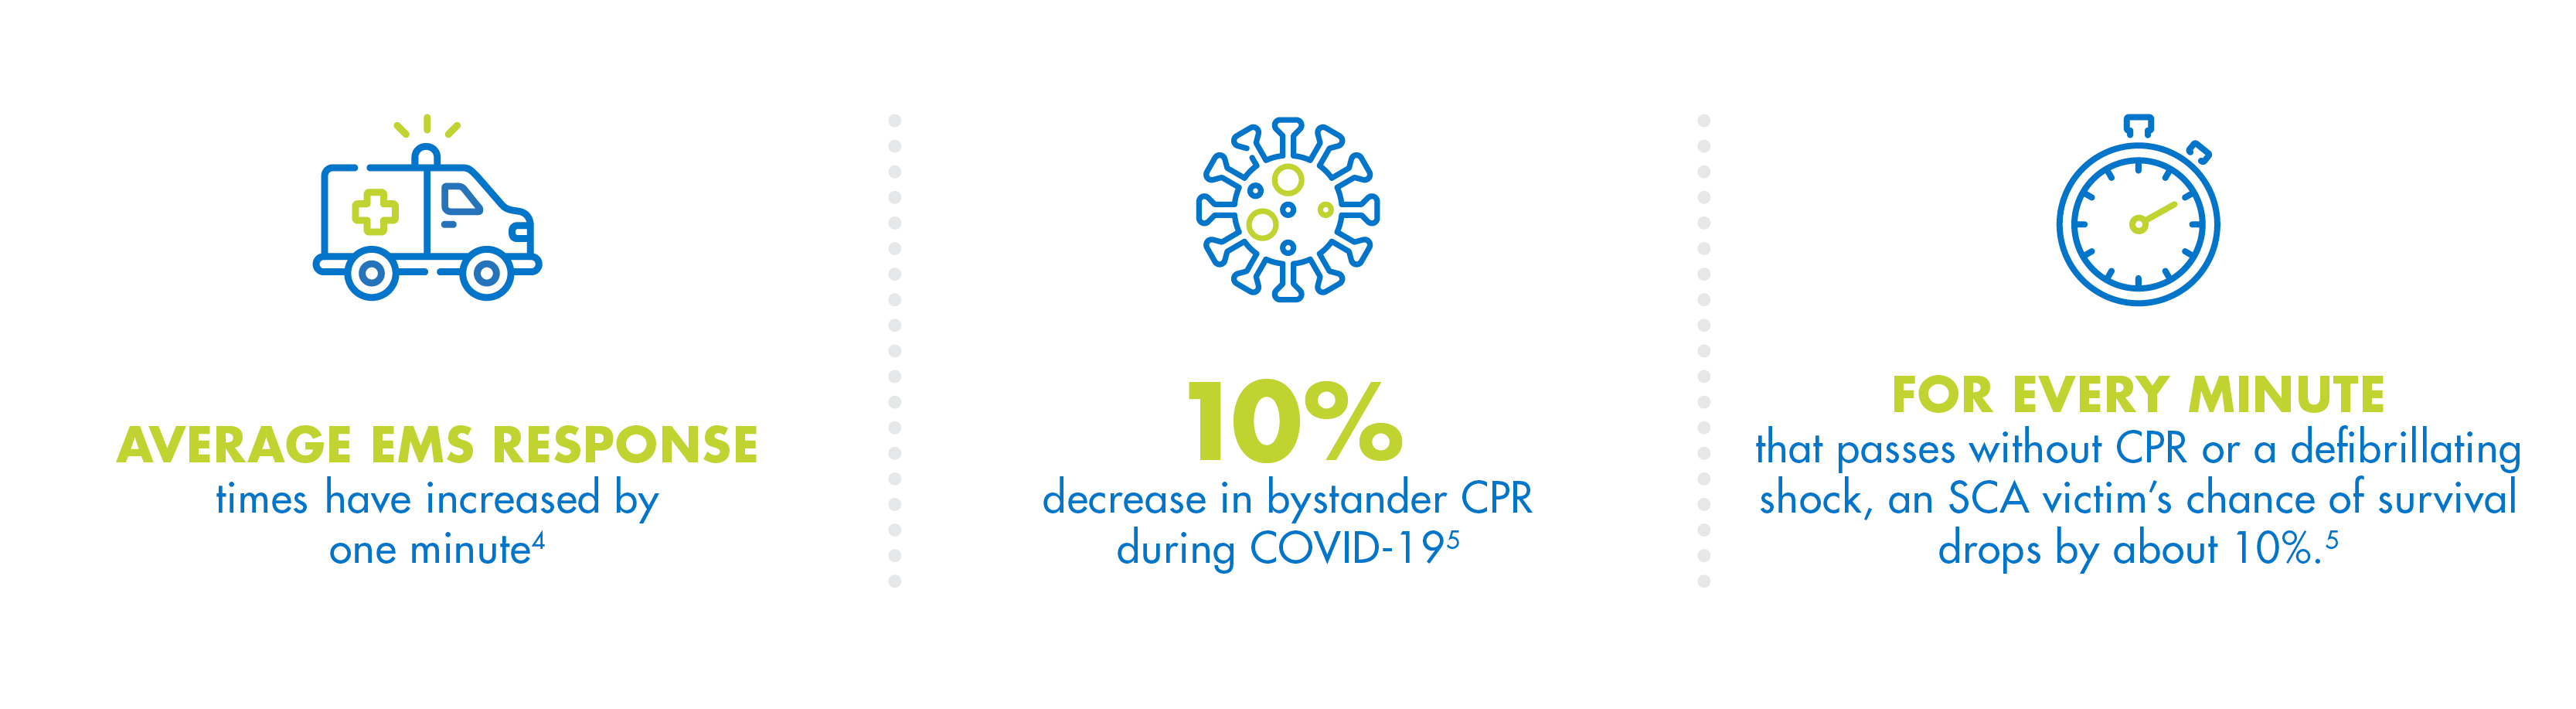 Average EMS response times have increased by 1 minute | 10% decrease in bystander CPR during COVID-19 | For every minute that passes without CPR or a defibrillating shock, an SCA victim's chance of survival drops by about 10%